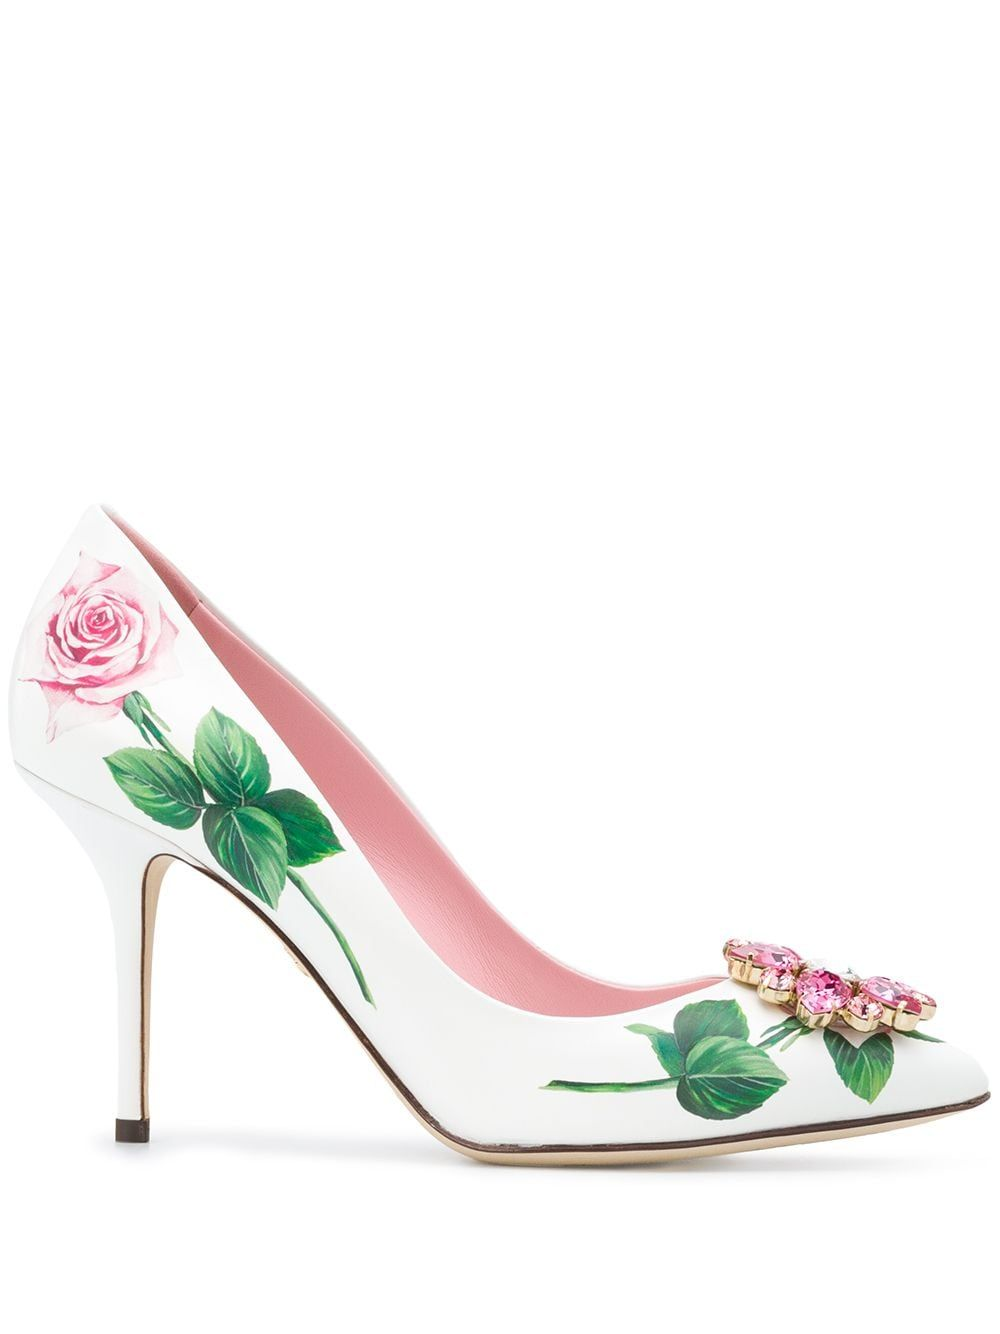 Dolce & Gabbana Tropical Rose crystal-embellished Pumps - Farfetch